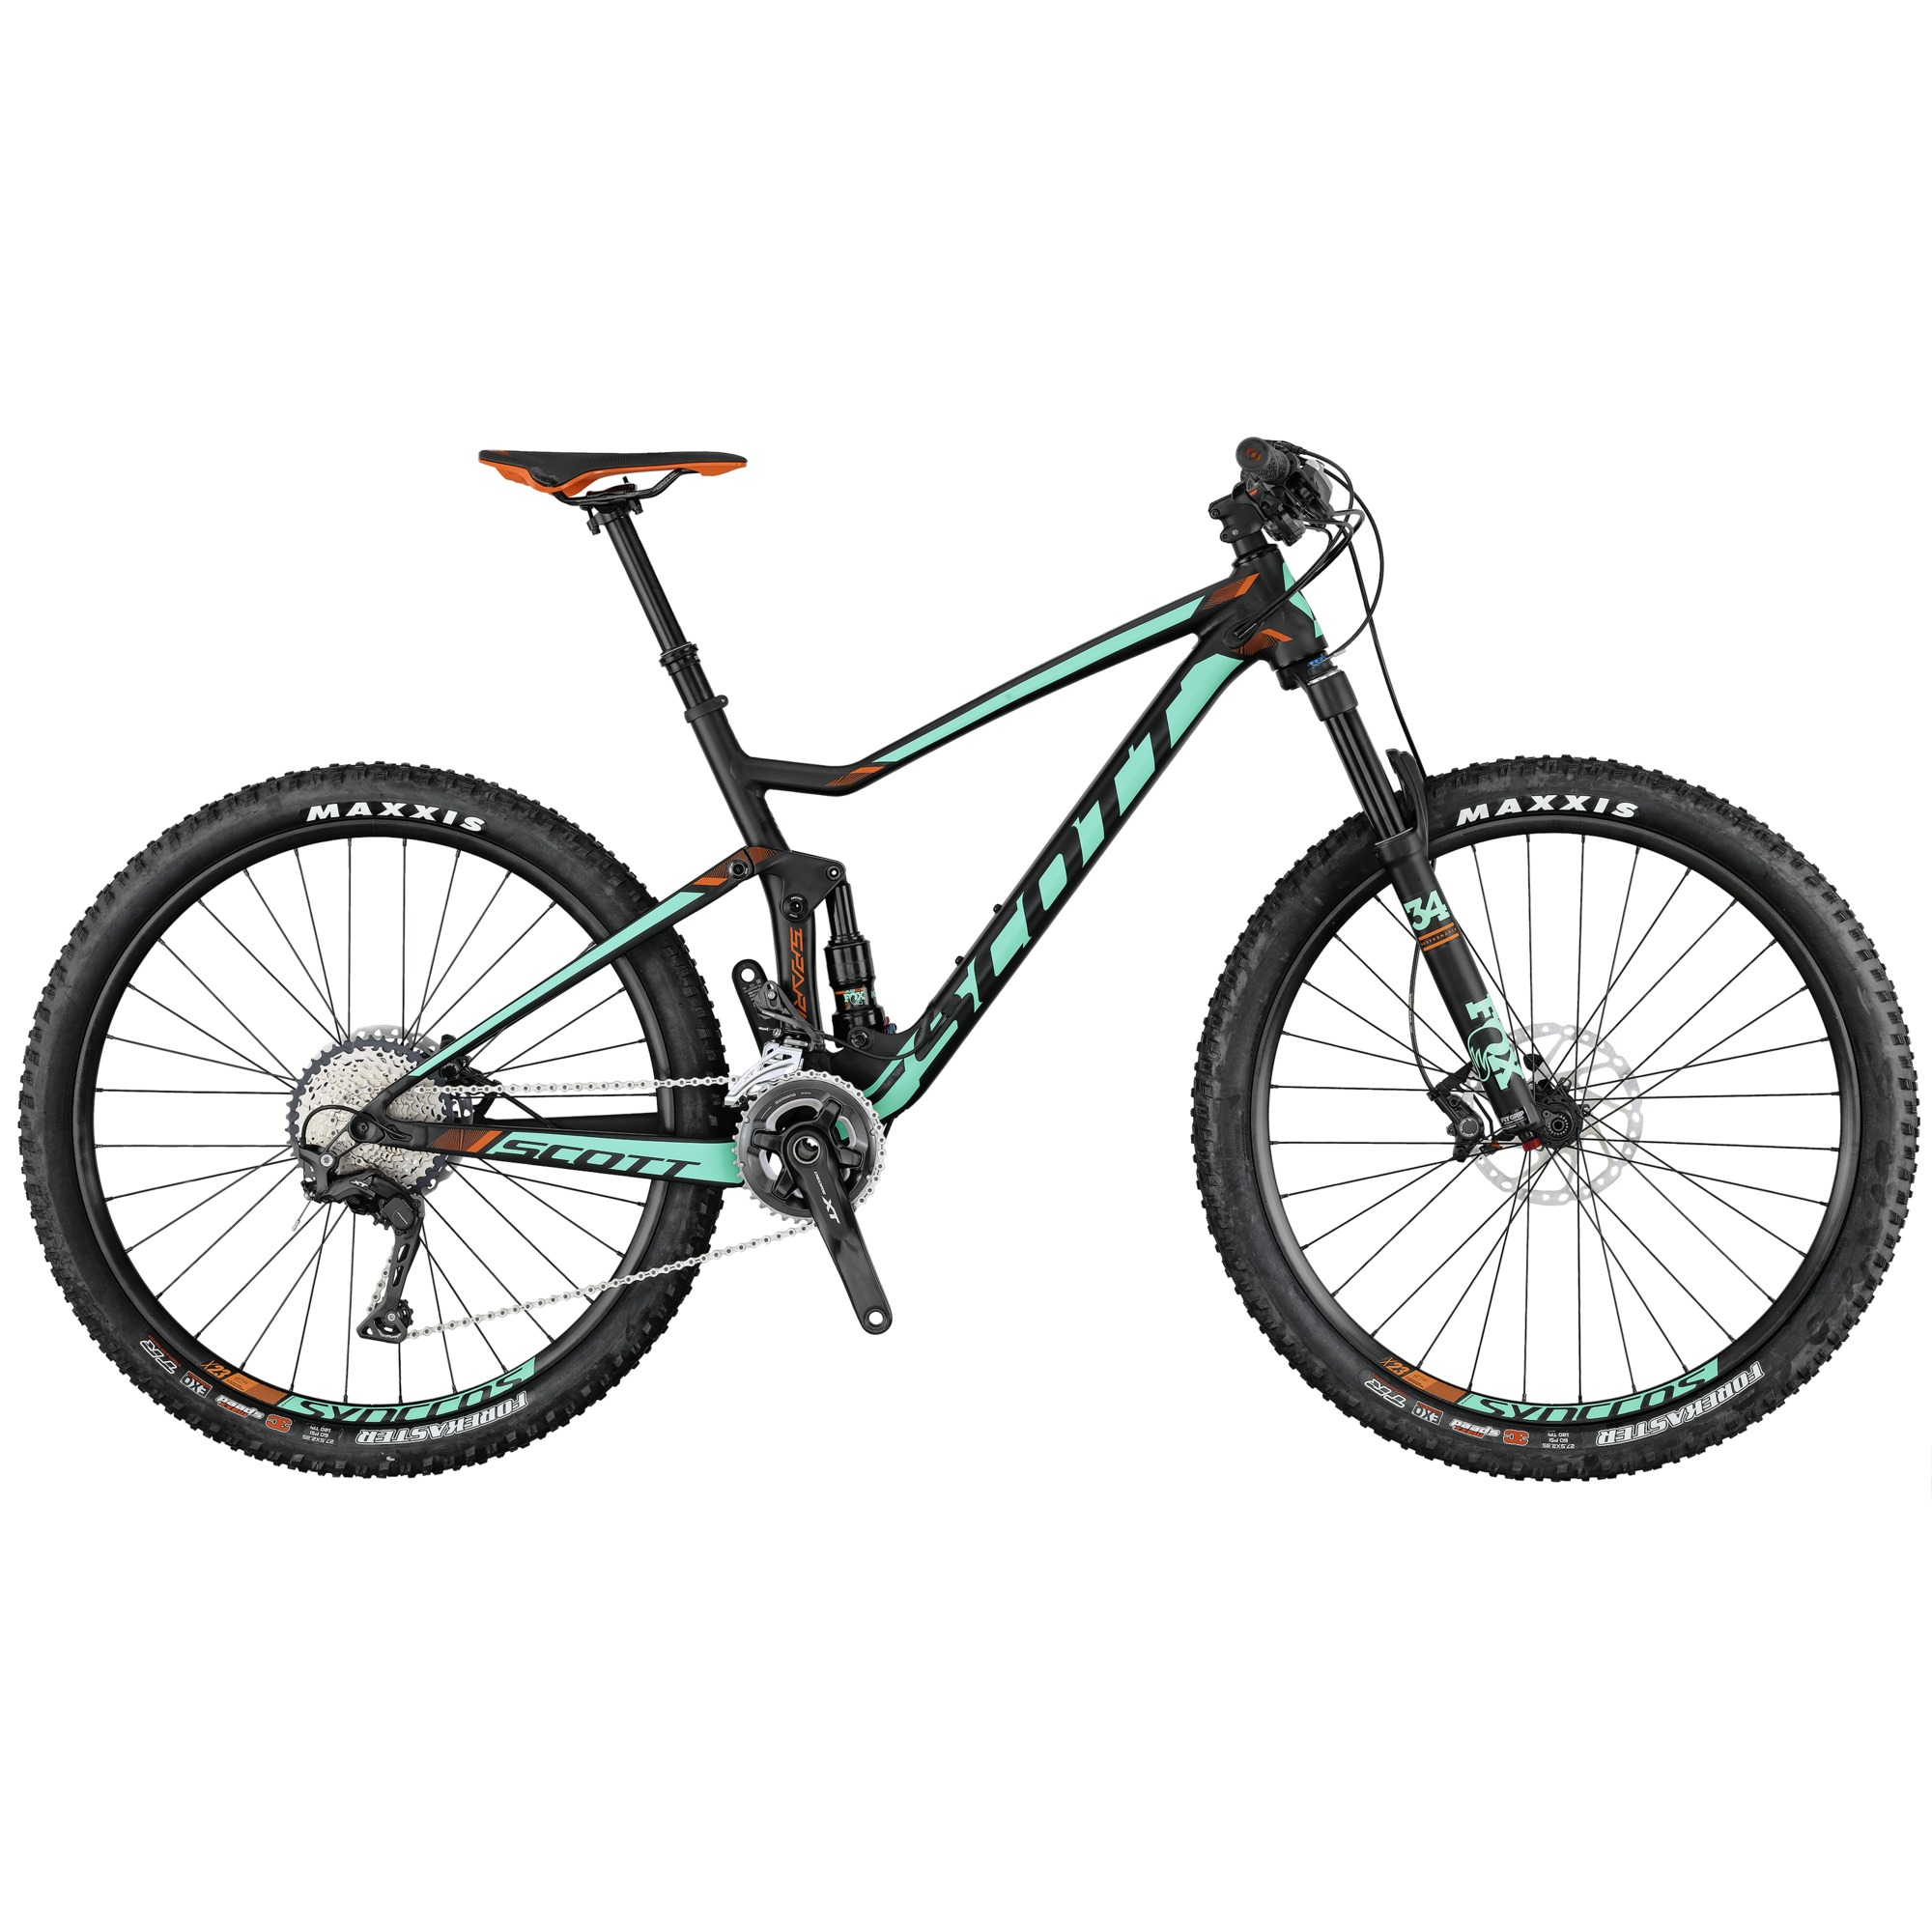 SCOTT Contessa Spark 720 Bike